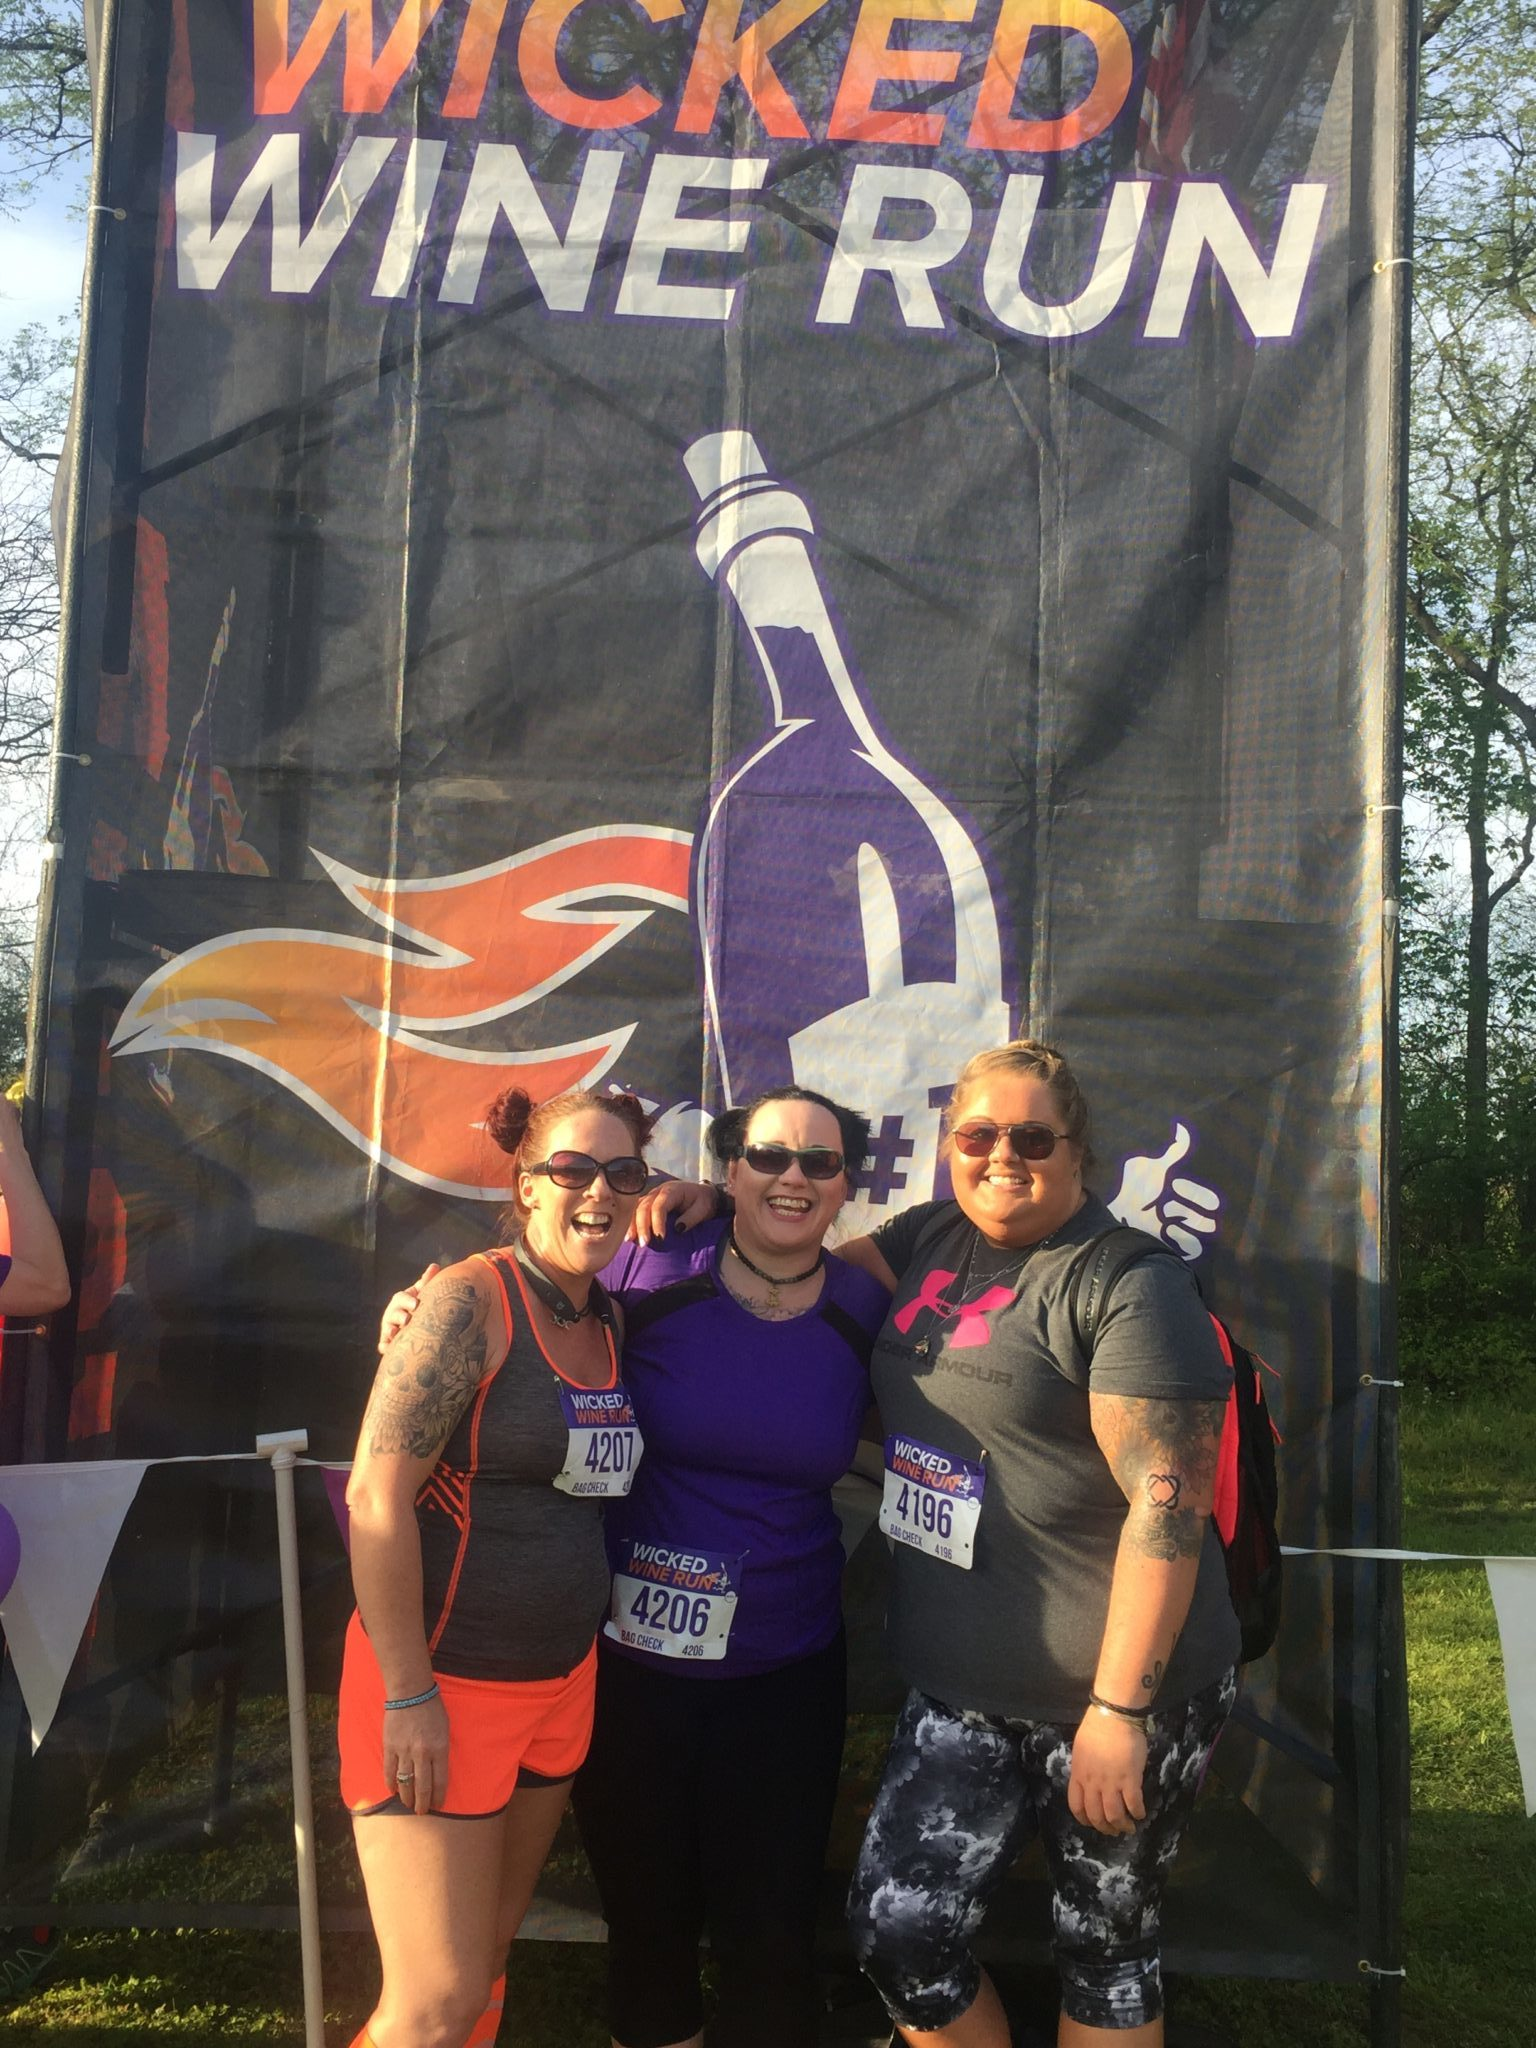 Wicked Wine Run 5K | Nashville, TN